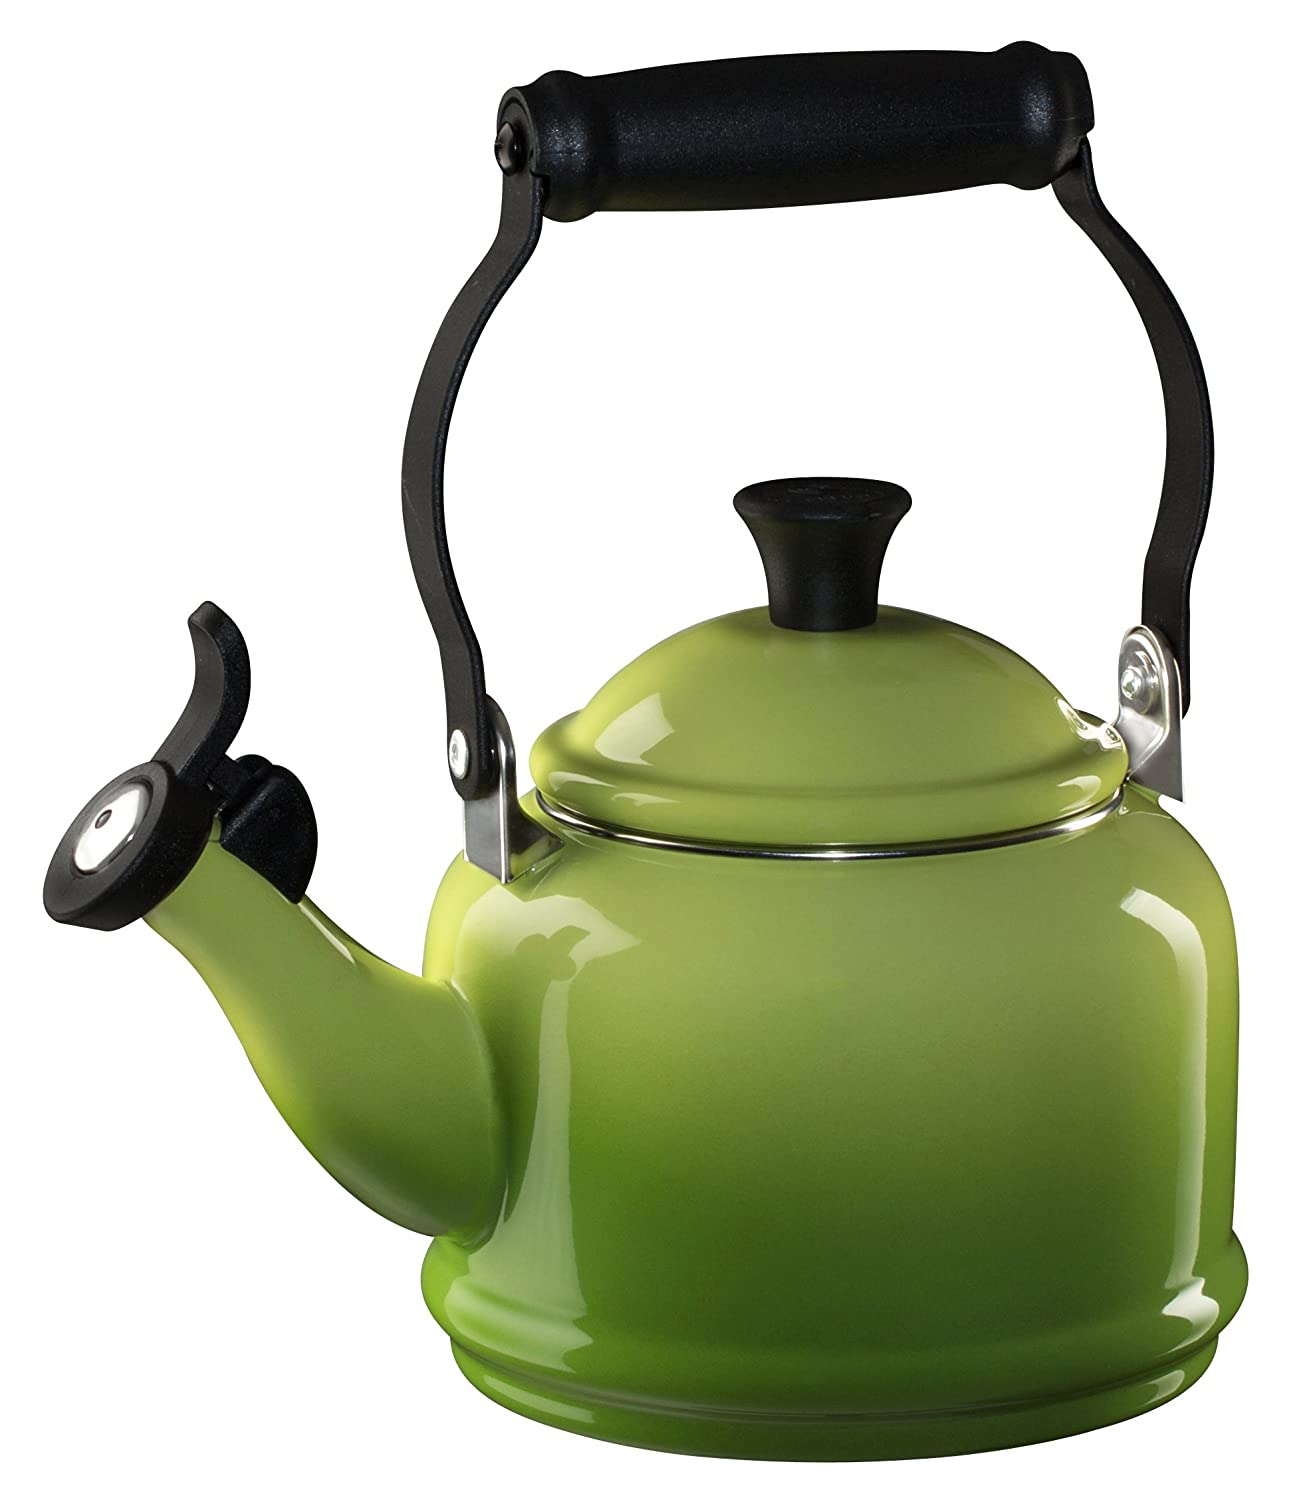 Le Creuset Enamel-on-Steel Demi 1-1/4-Quart Teakettle, Palm